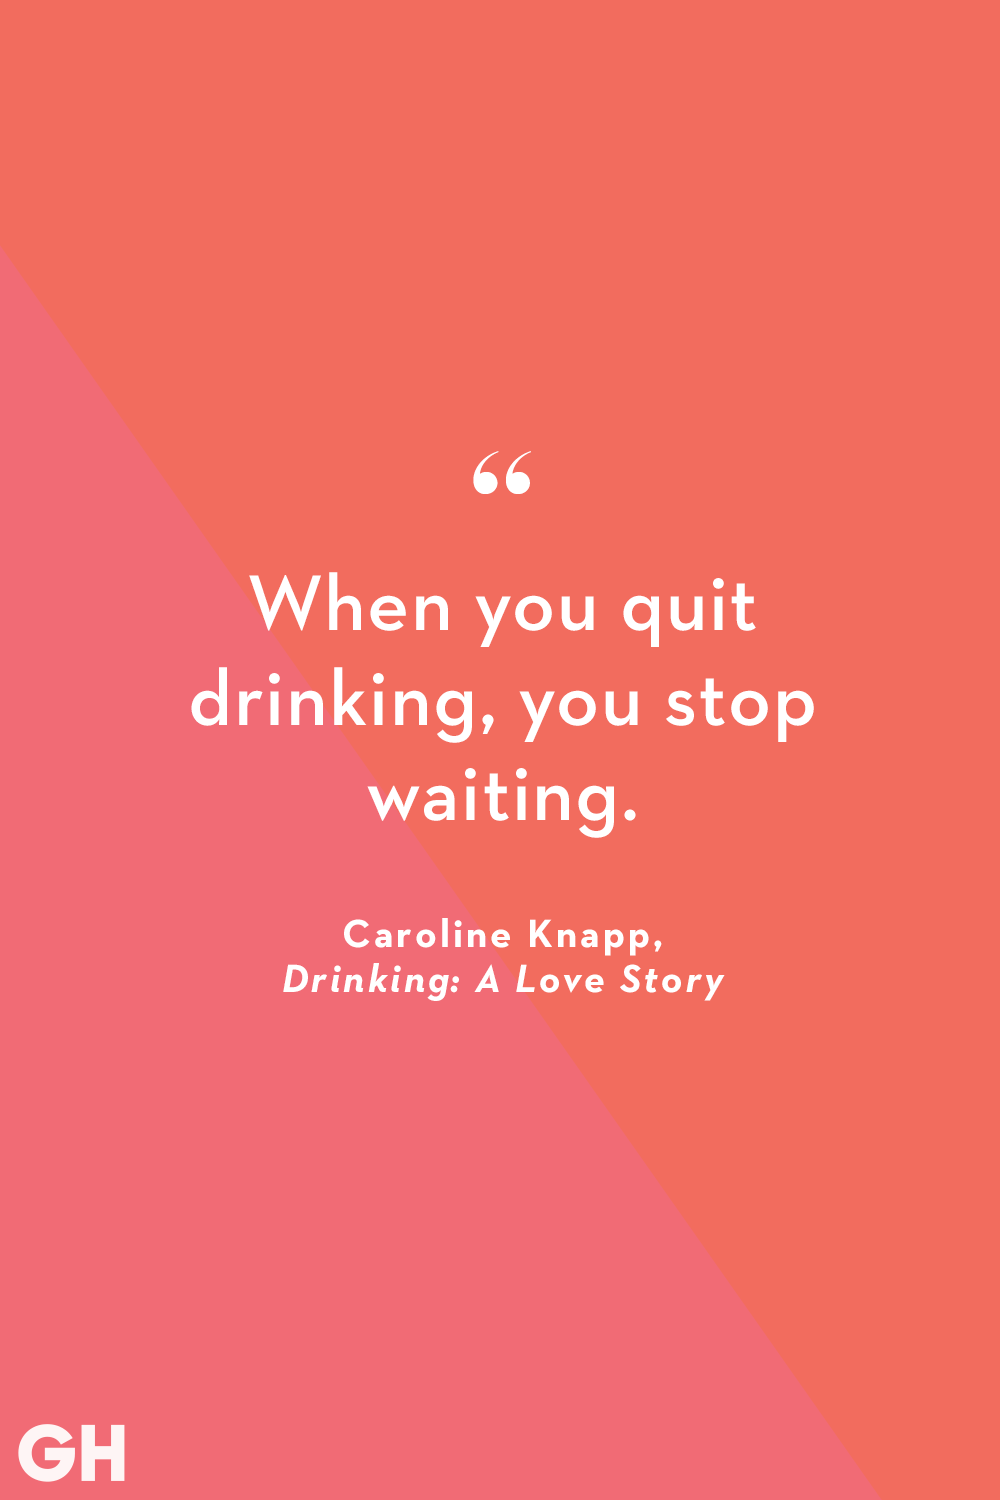 21 Stop Drinking Alcohol Quotes Pictures & Photos - Picss Mine